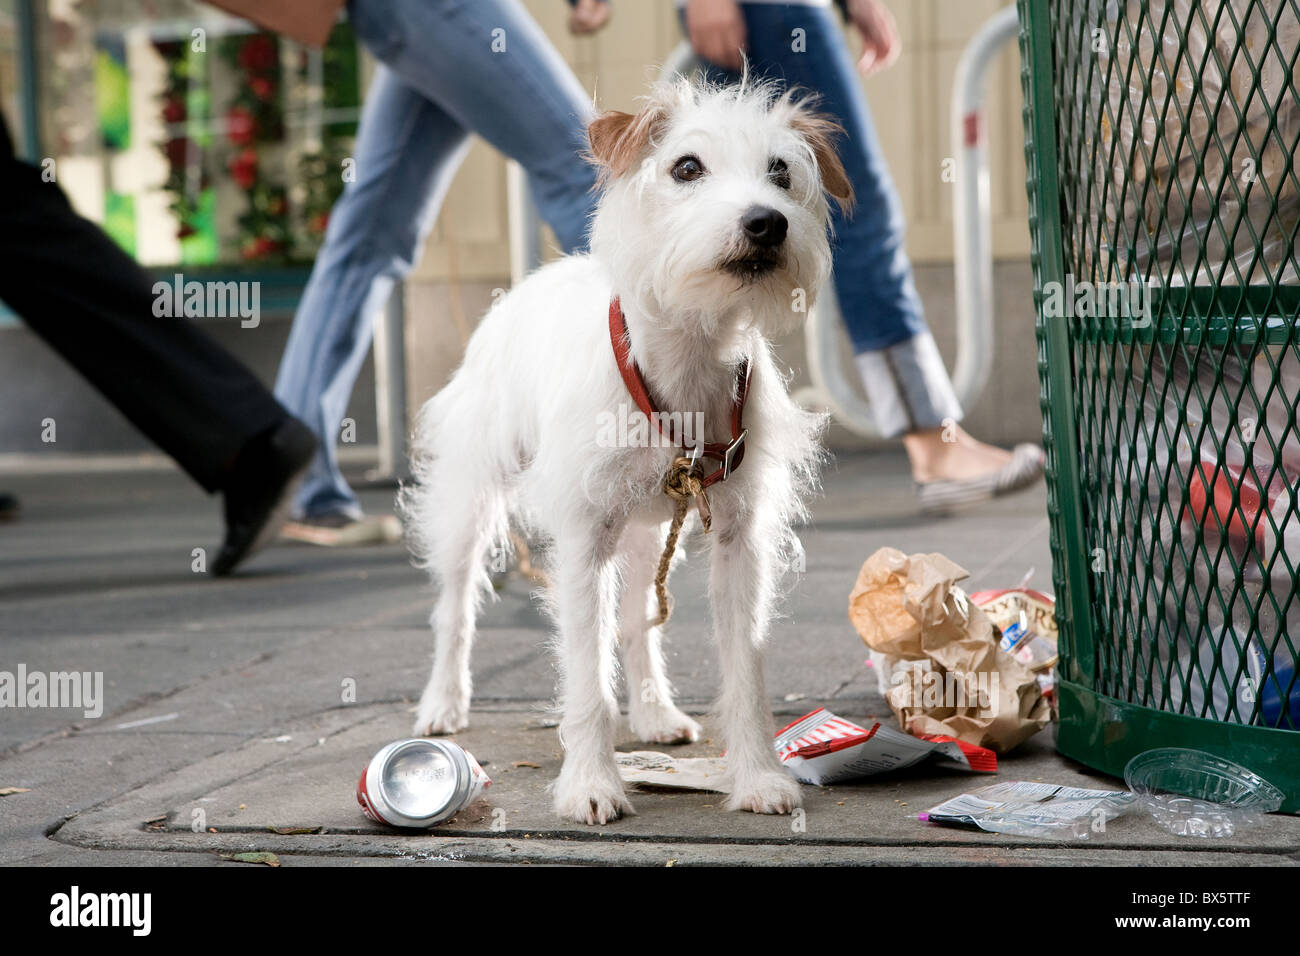 FRIDAY HOTEL FOR DOGS (2009) - Stock Image